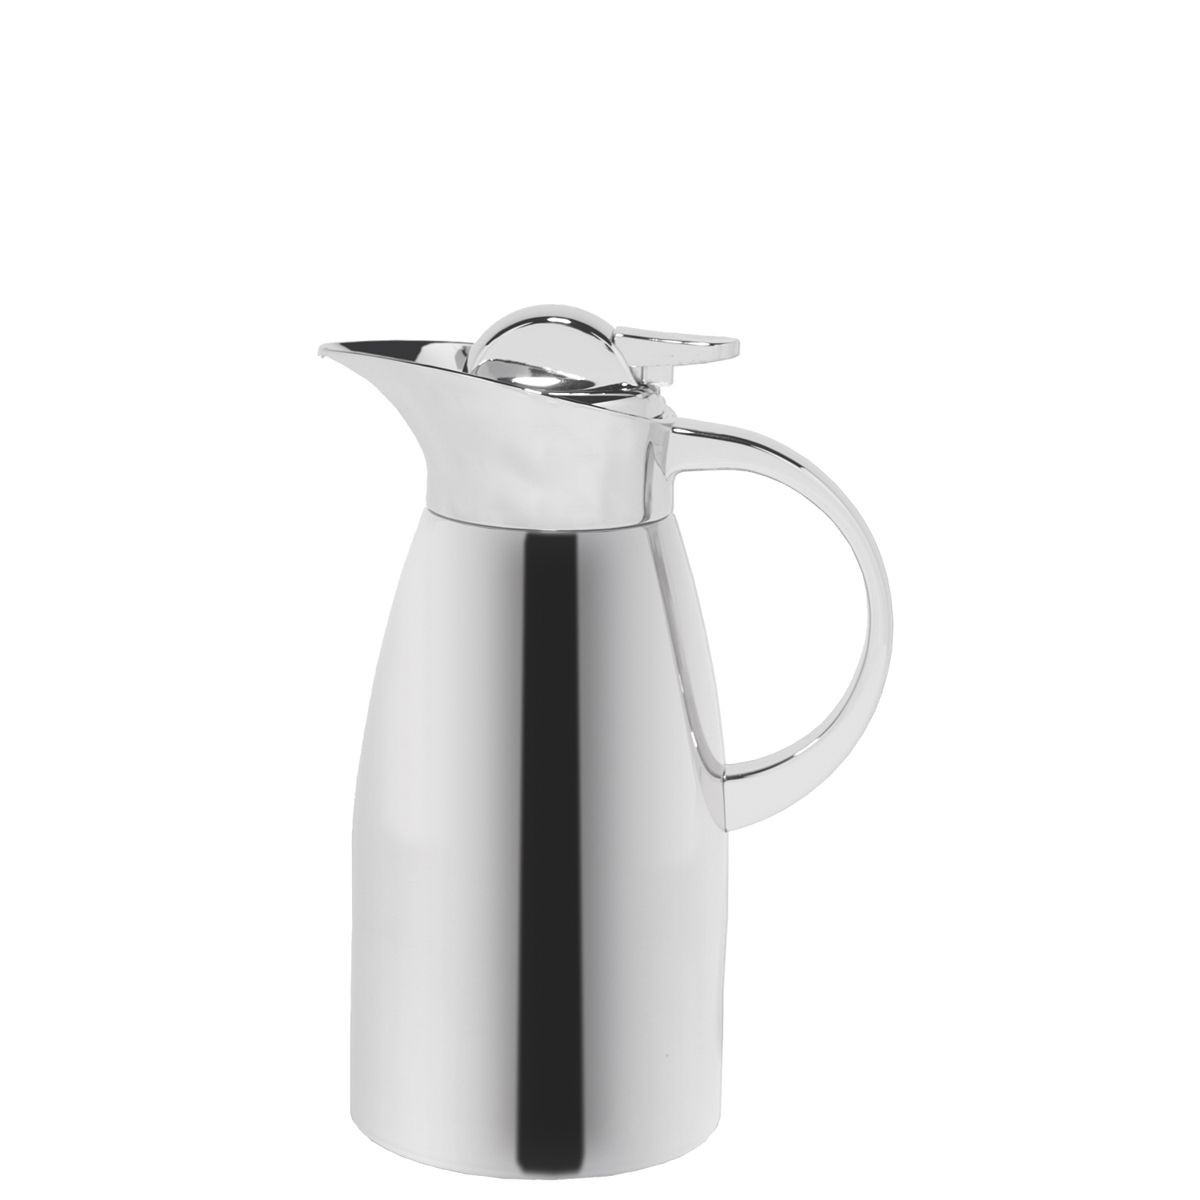 Service Ideas LVP1500 Elite Touch Stainless Steel Server, 1.5 Liter